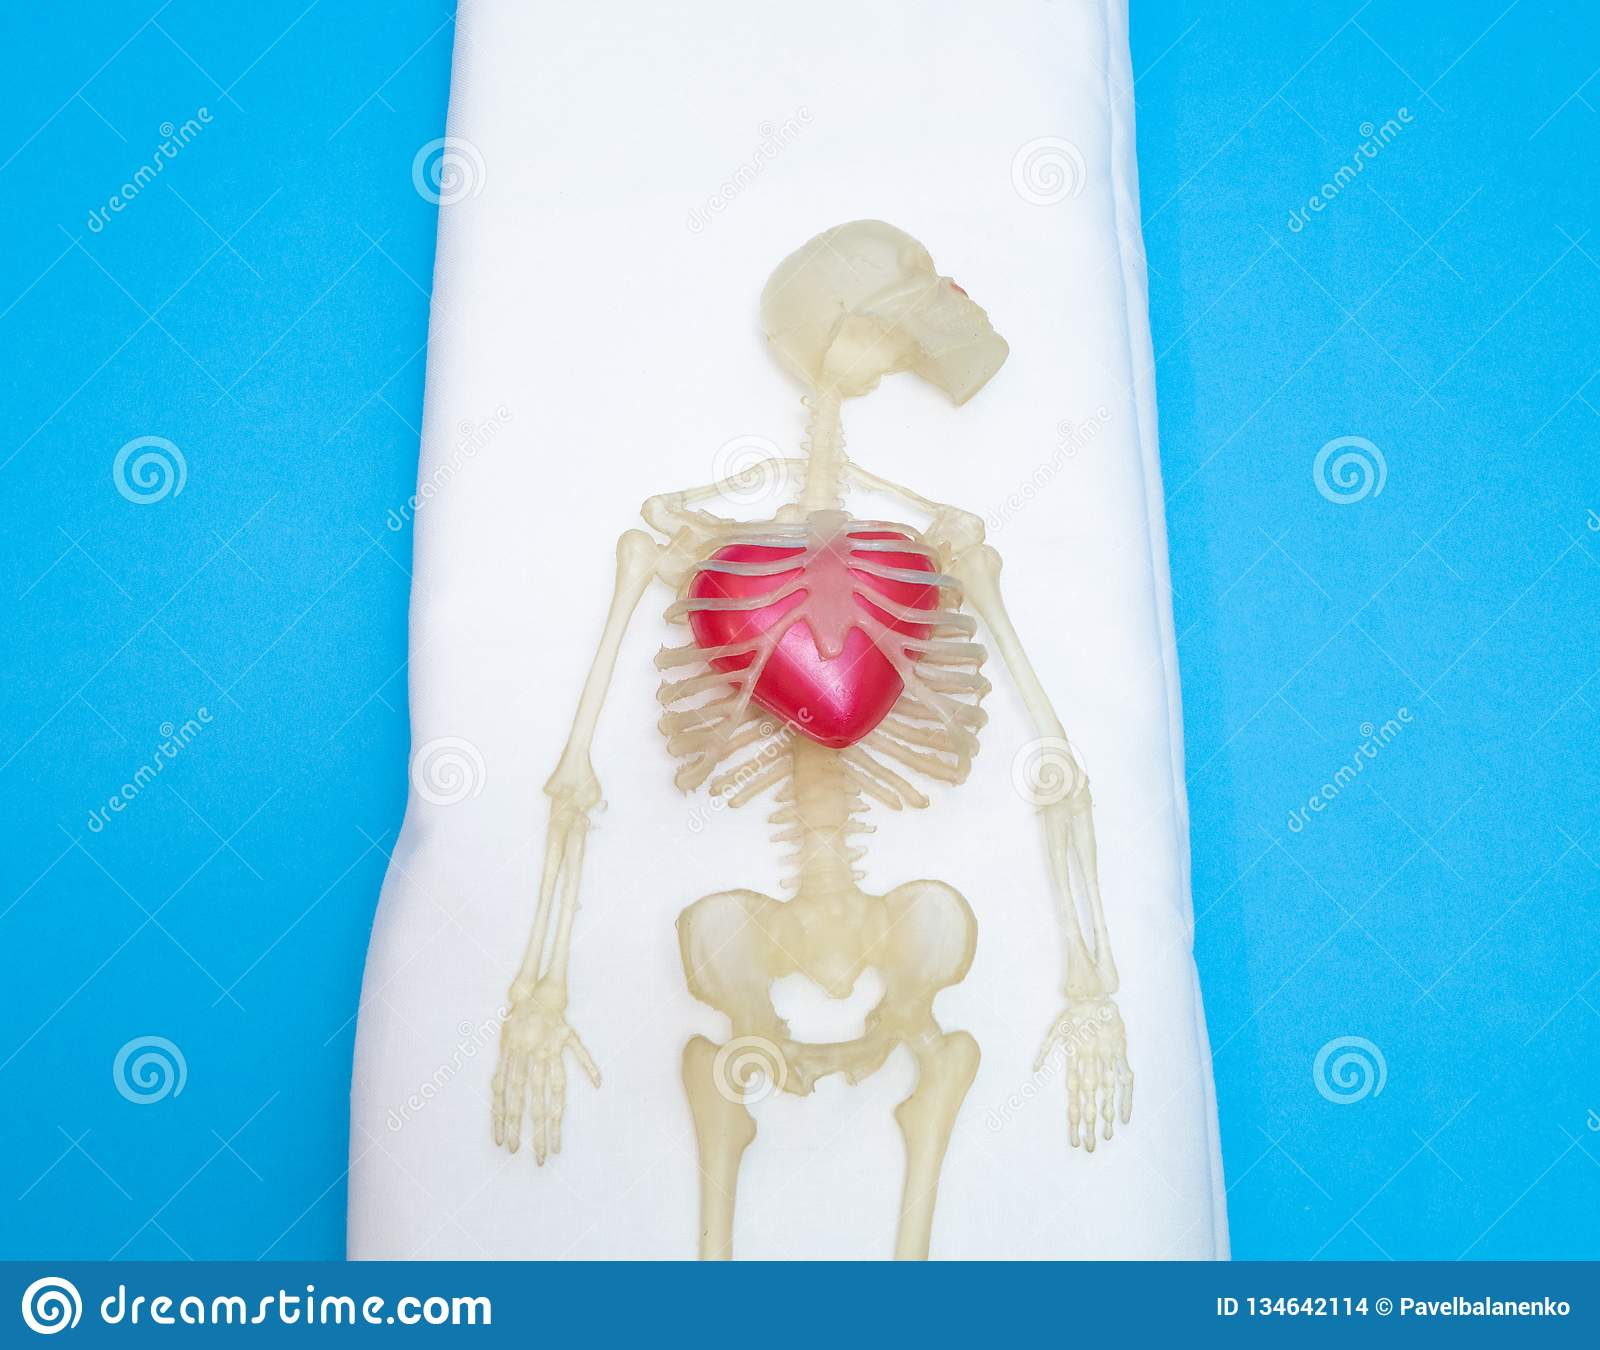 Human Body Skeleton With Big Red Heart Stock Photo Image Of Corpse